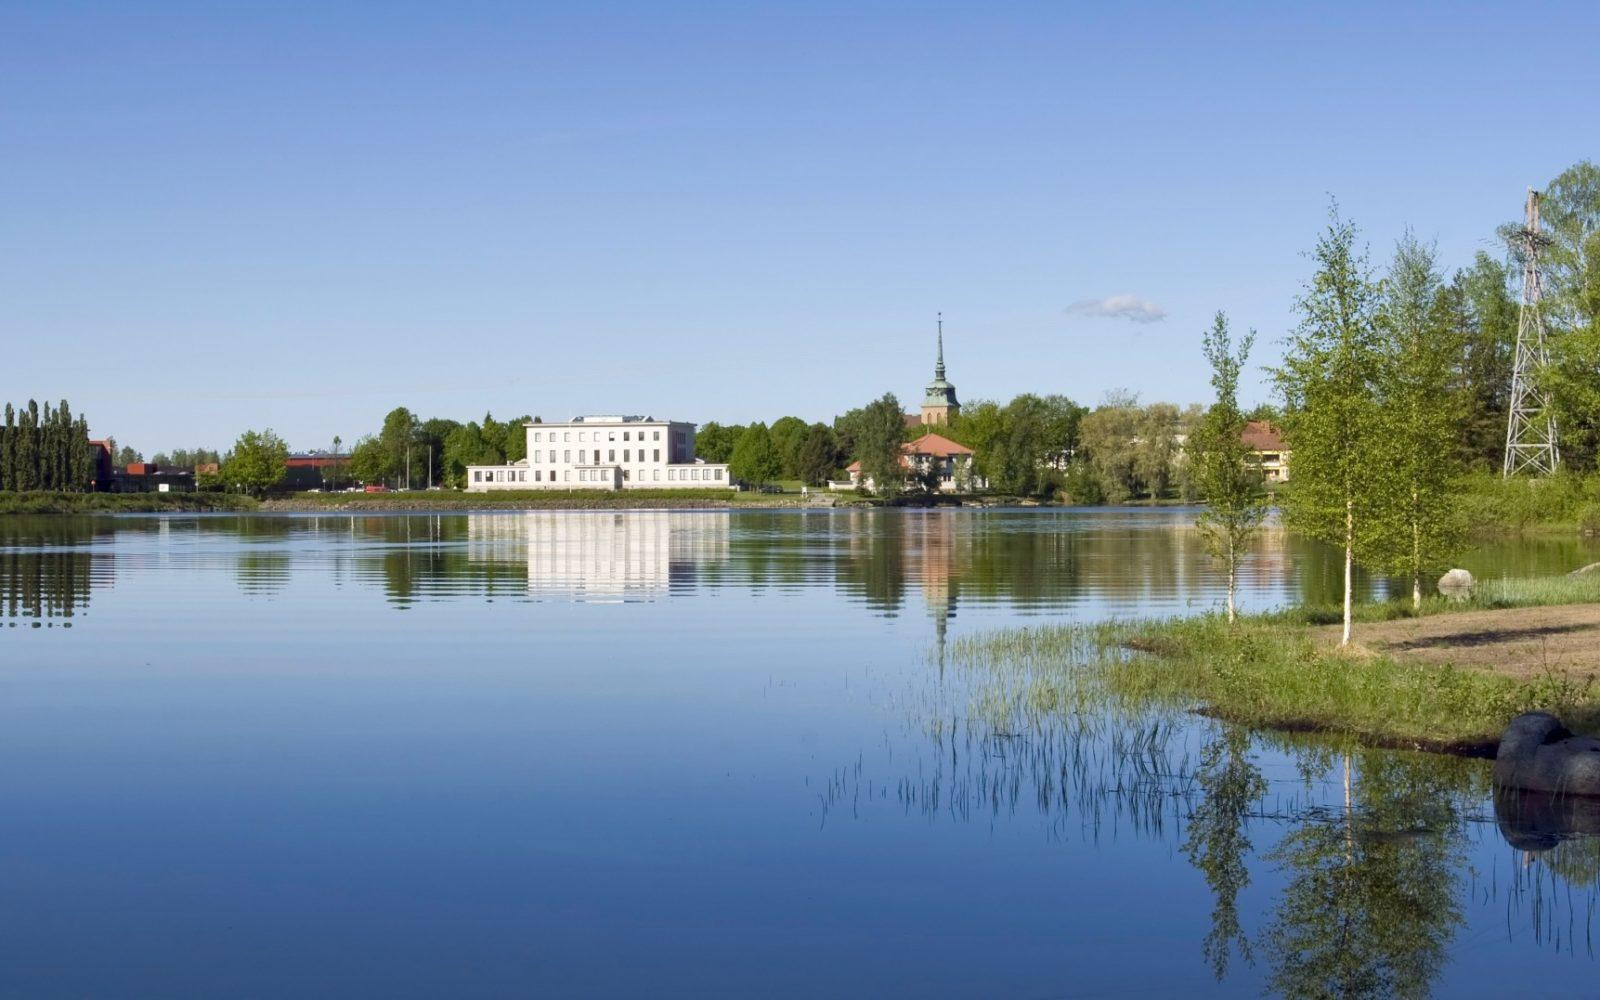 Serlachius Museum Gustaf is situated at a beautiful lakeside in the center of Mänttä. Photo: Serlachius Museums.